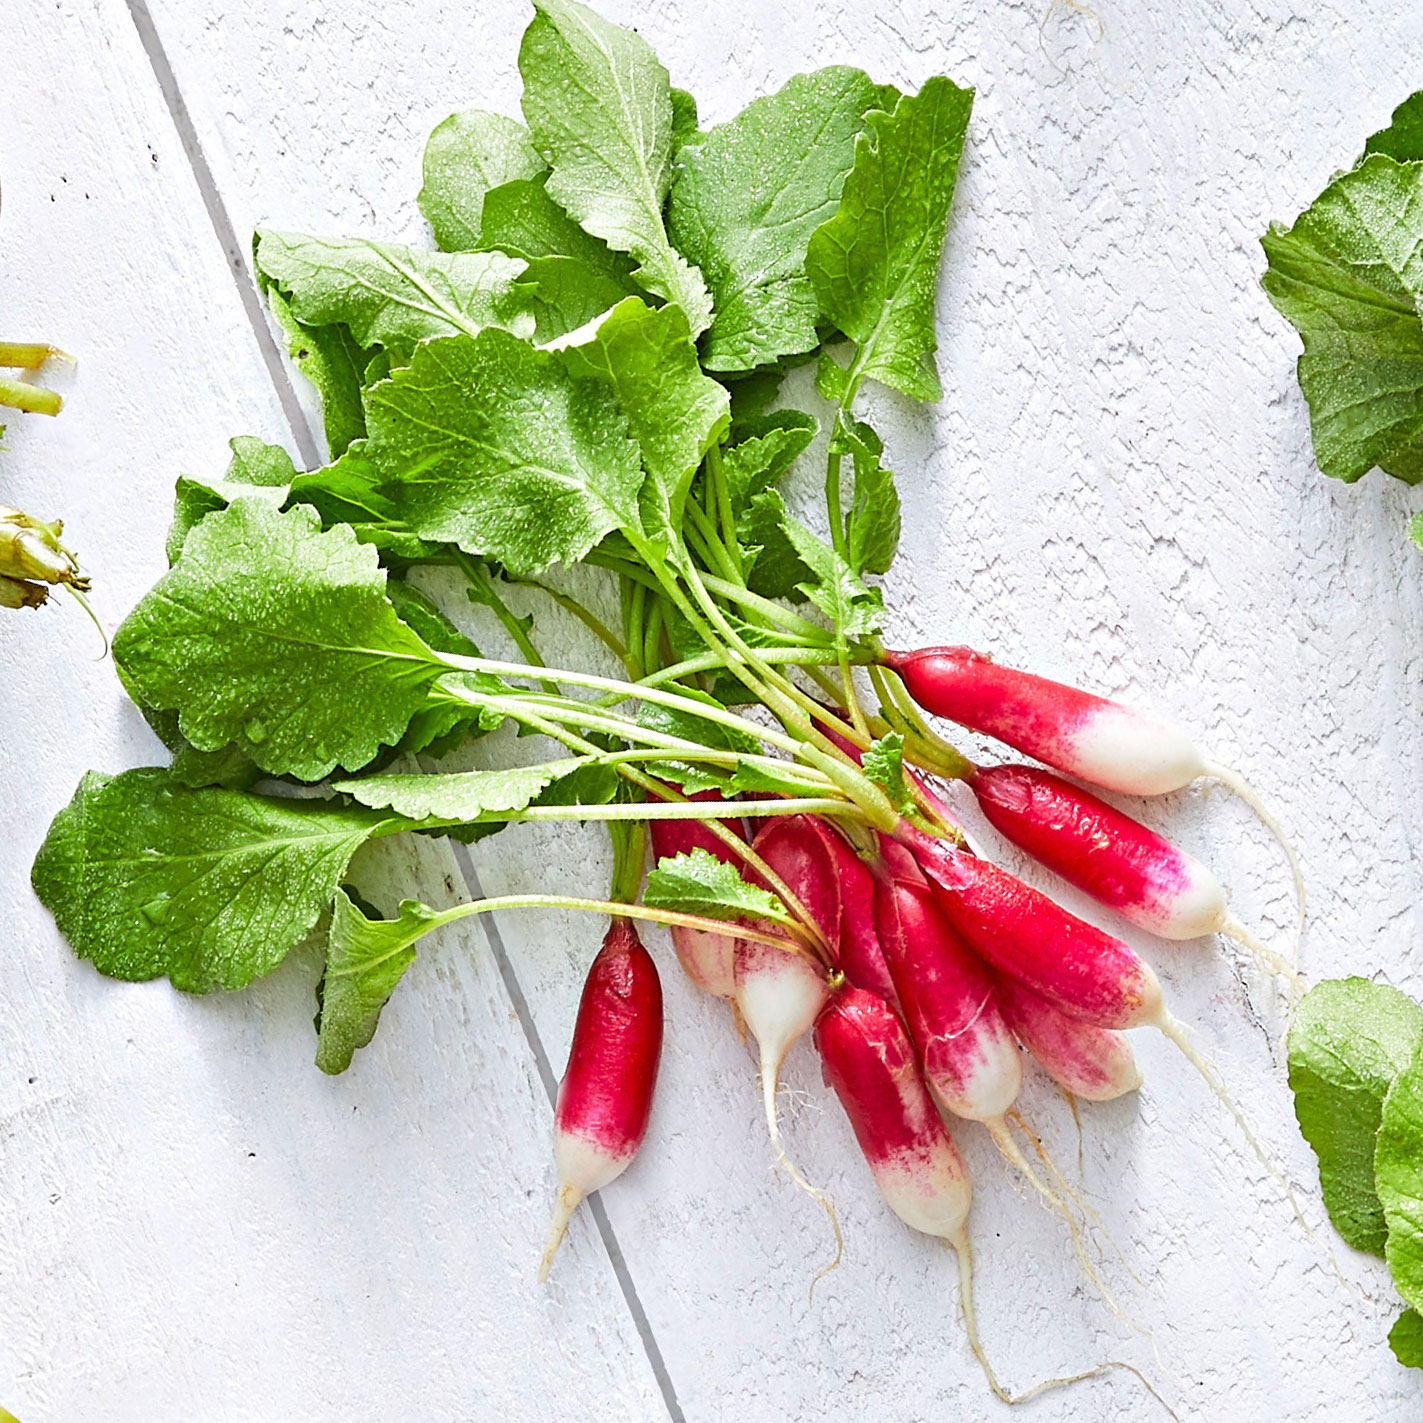 French Breakfast Radish Variety